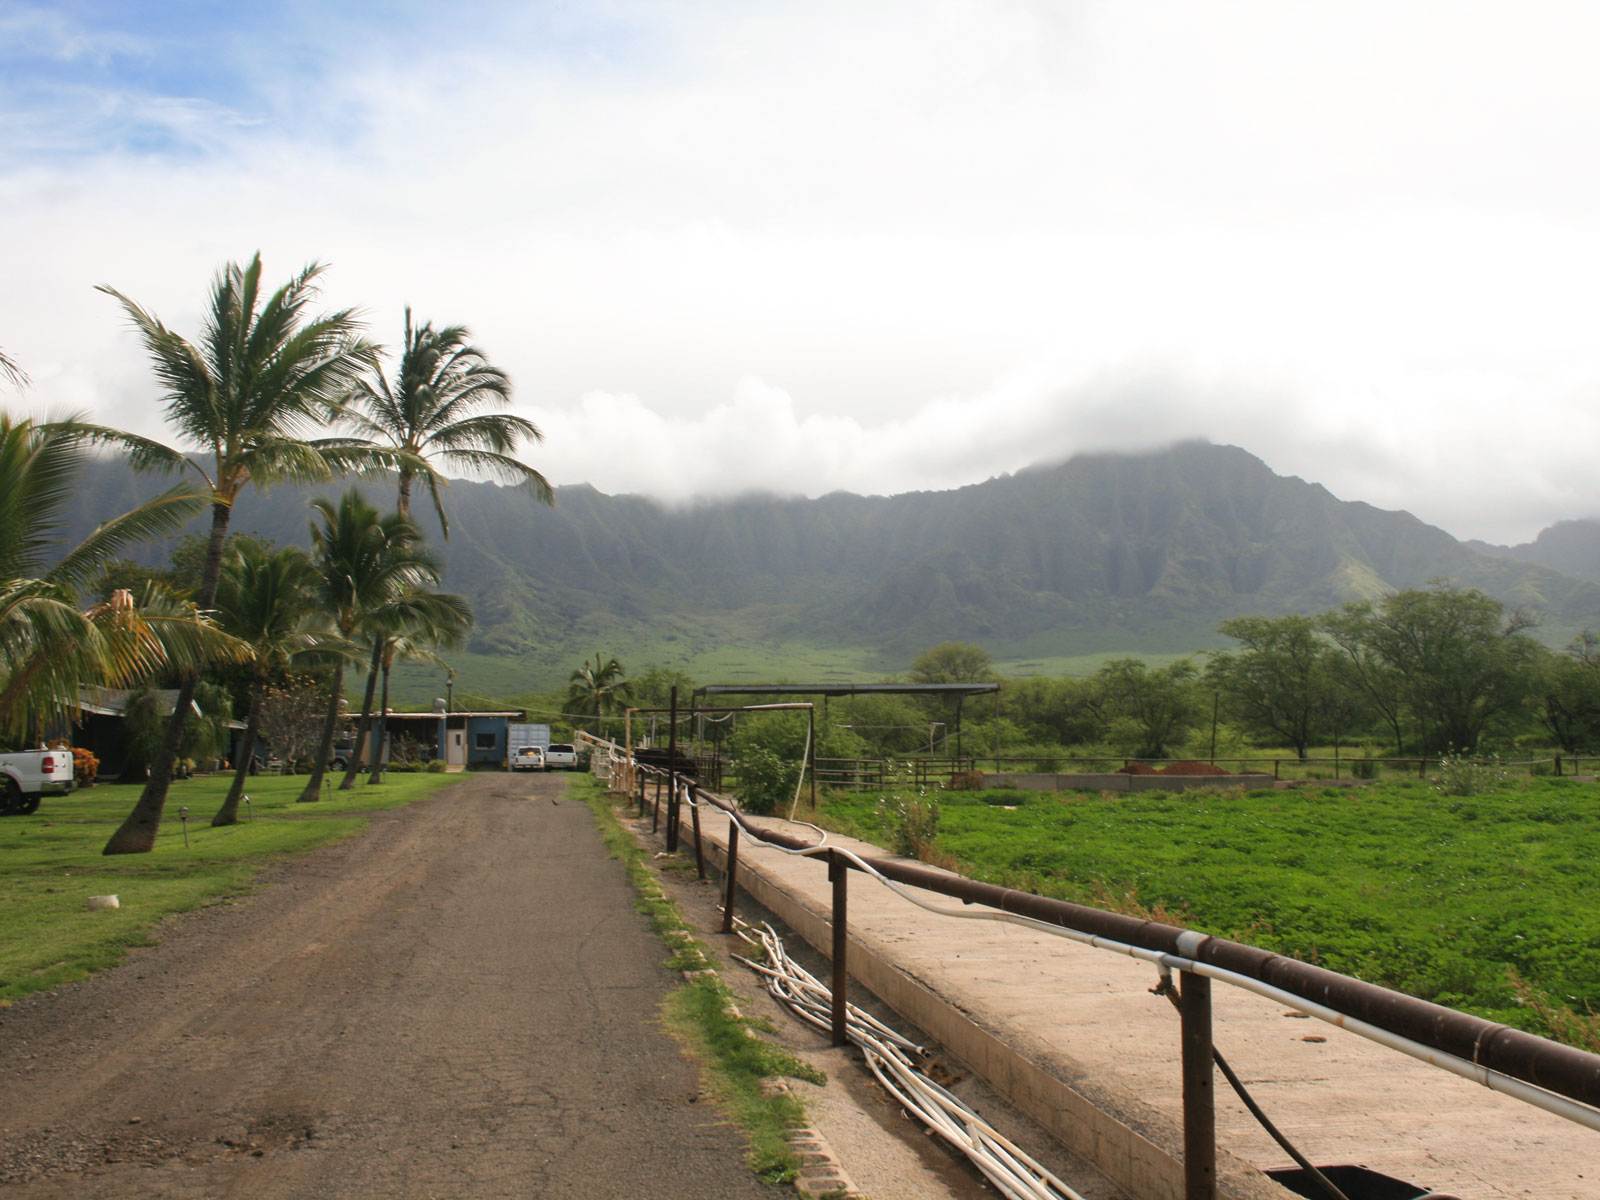 O'ahu's Last Dairy Farm Is Owned and Operated by Women